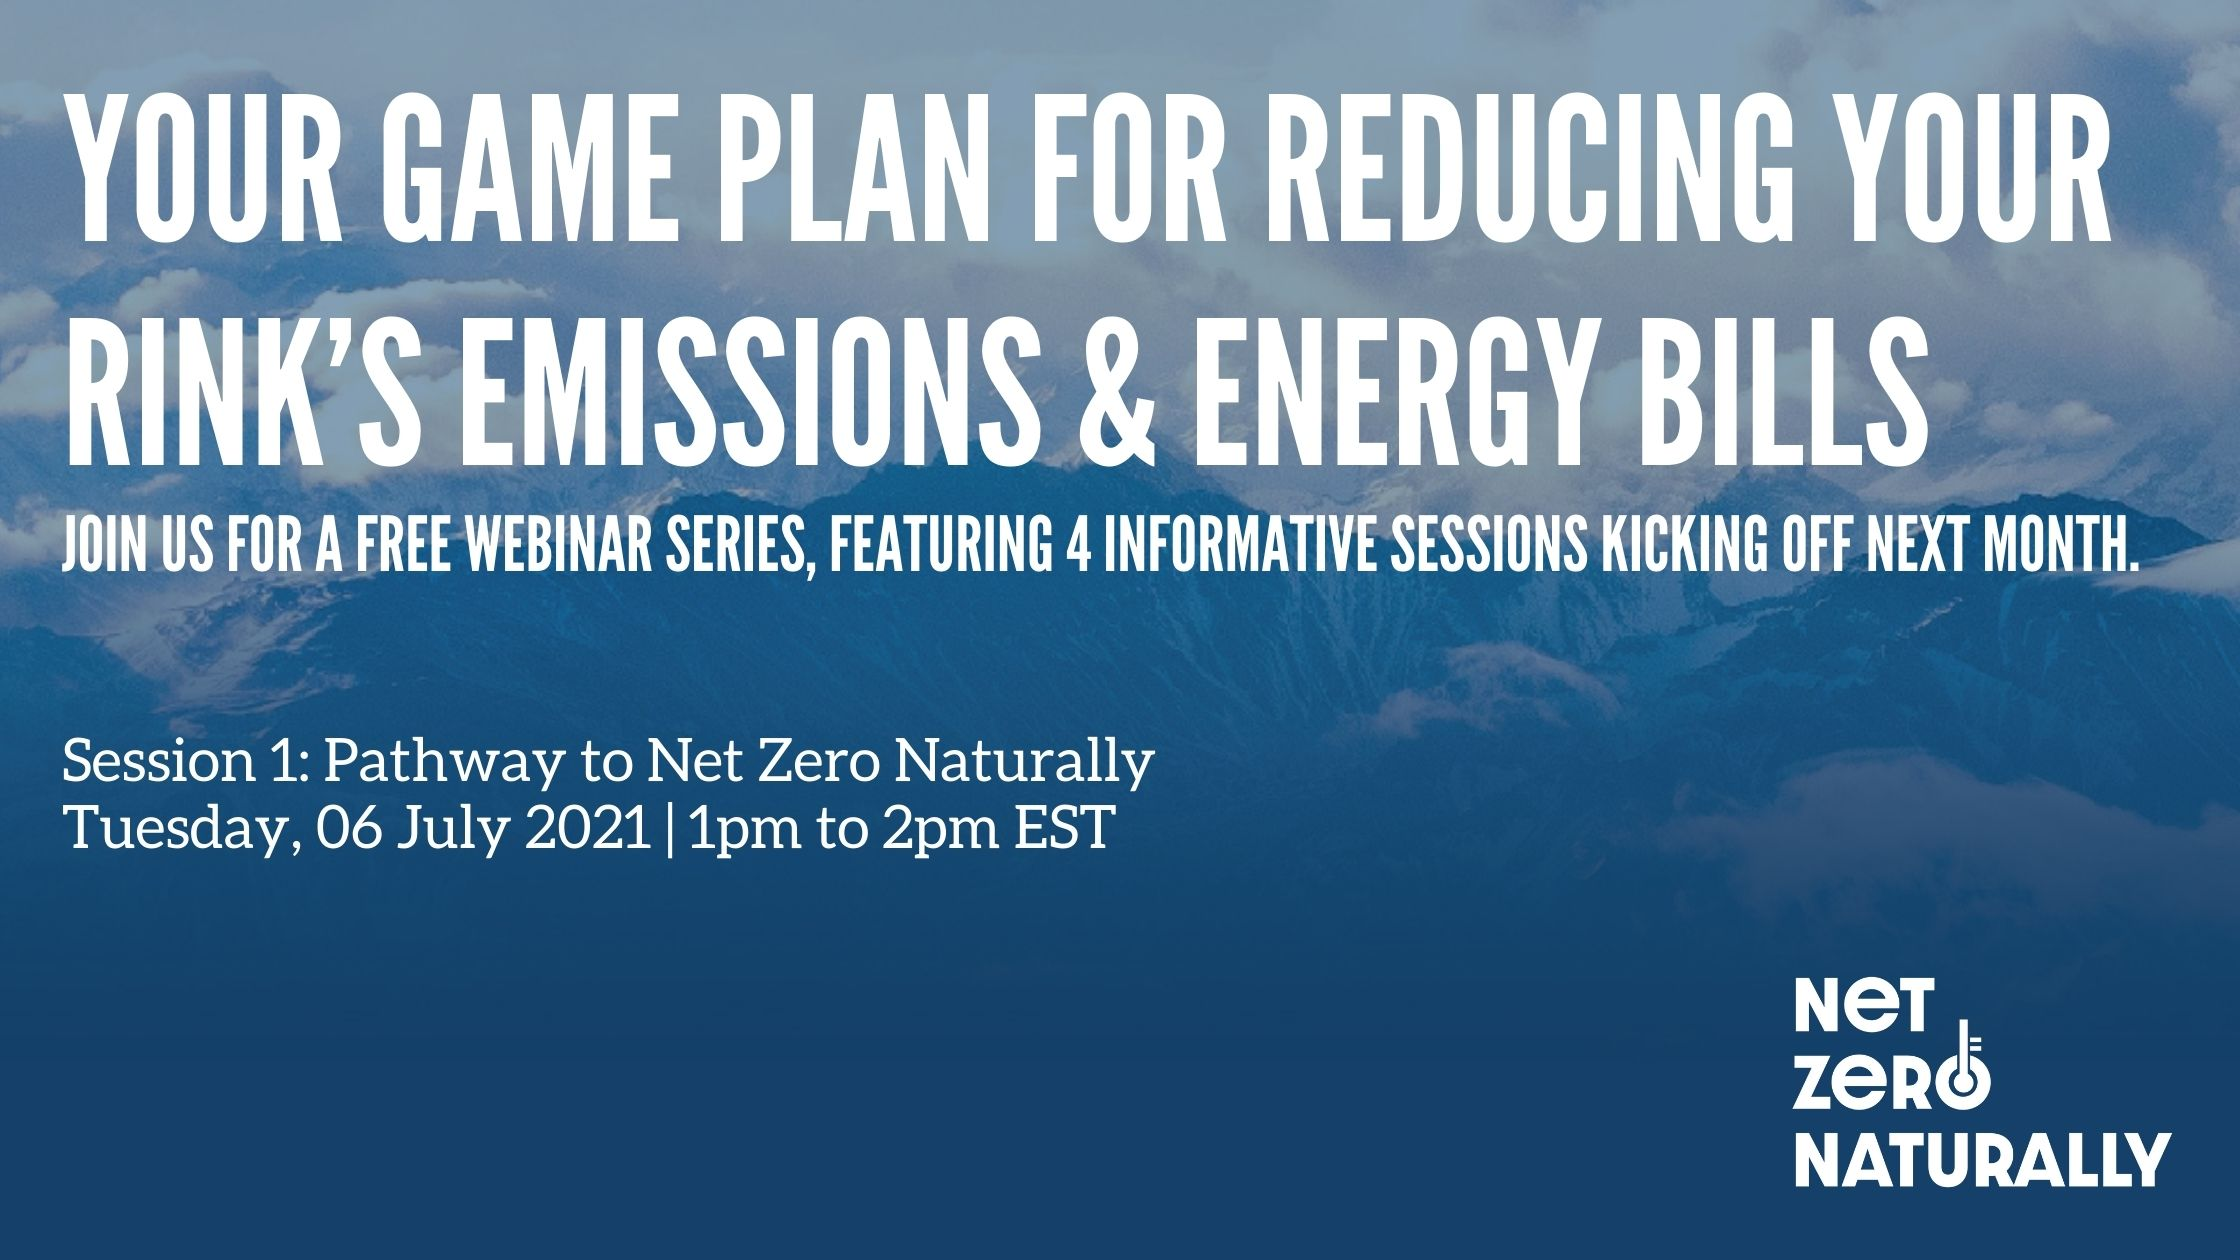 Your game plan for reducing your rink's emissions & energy bills